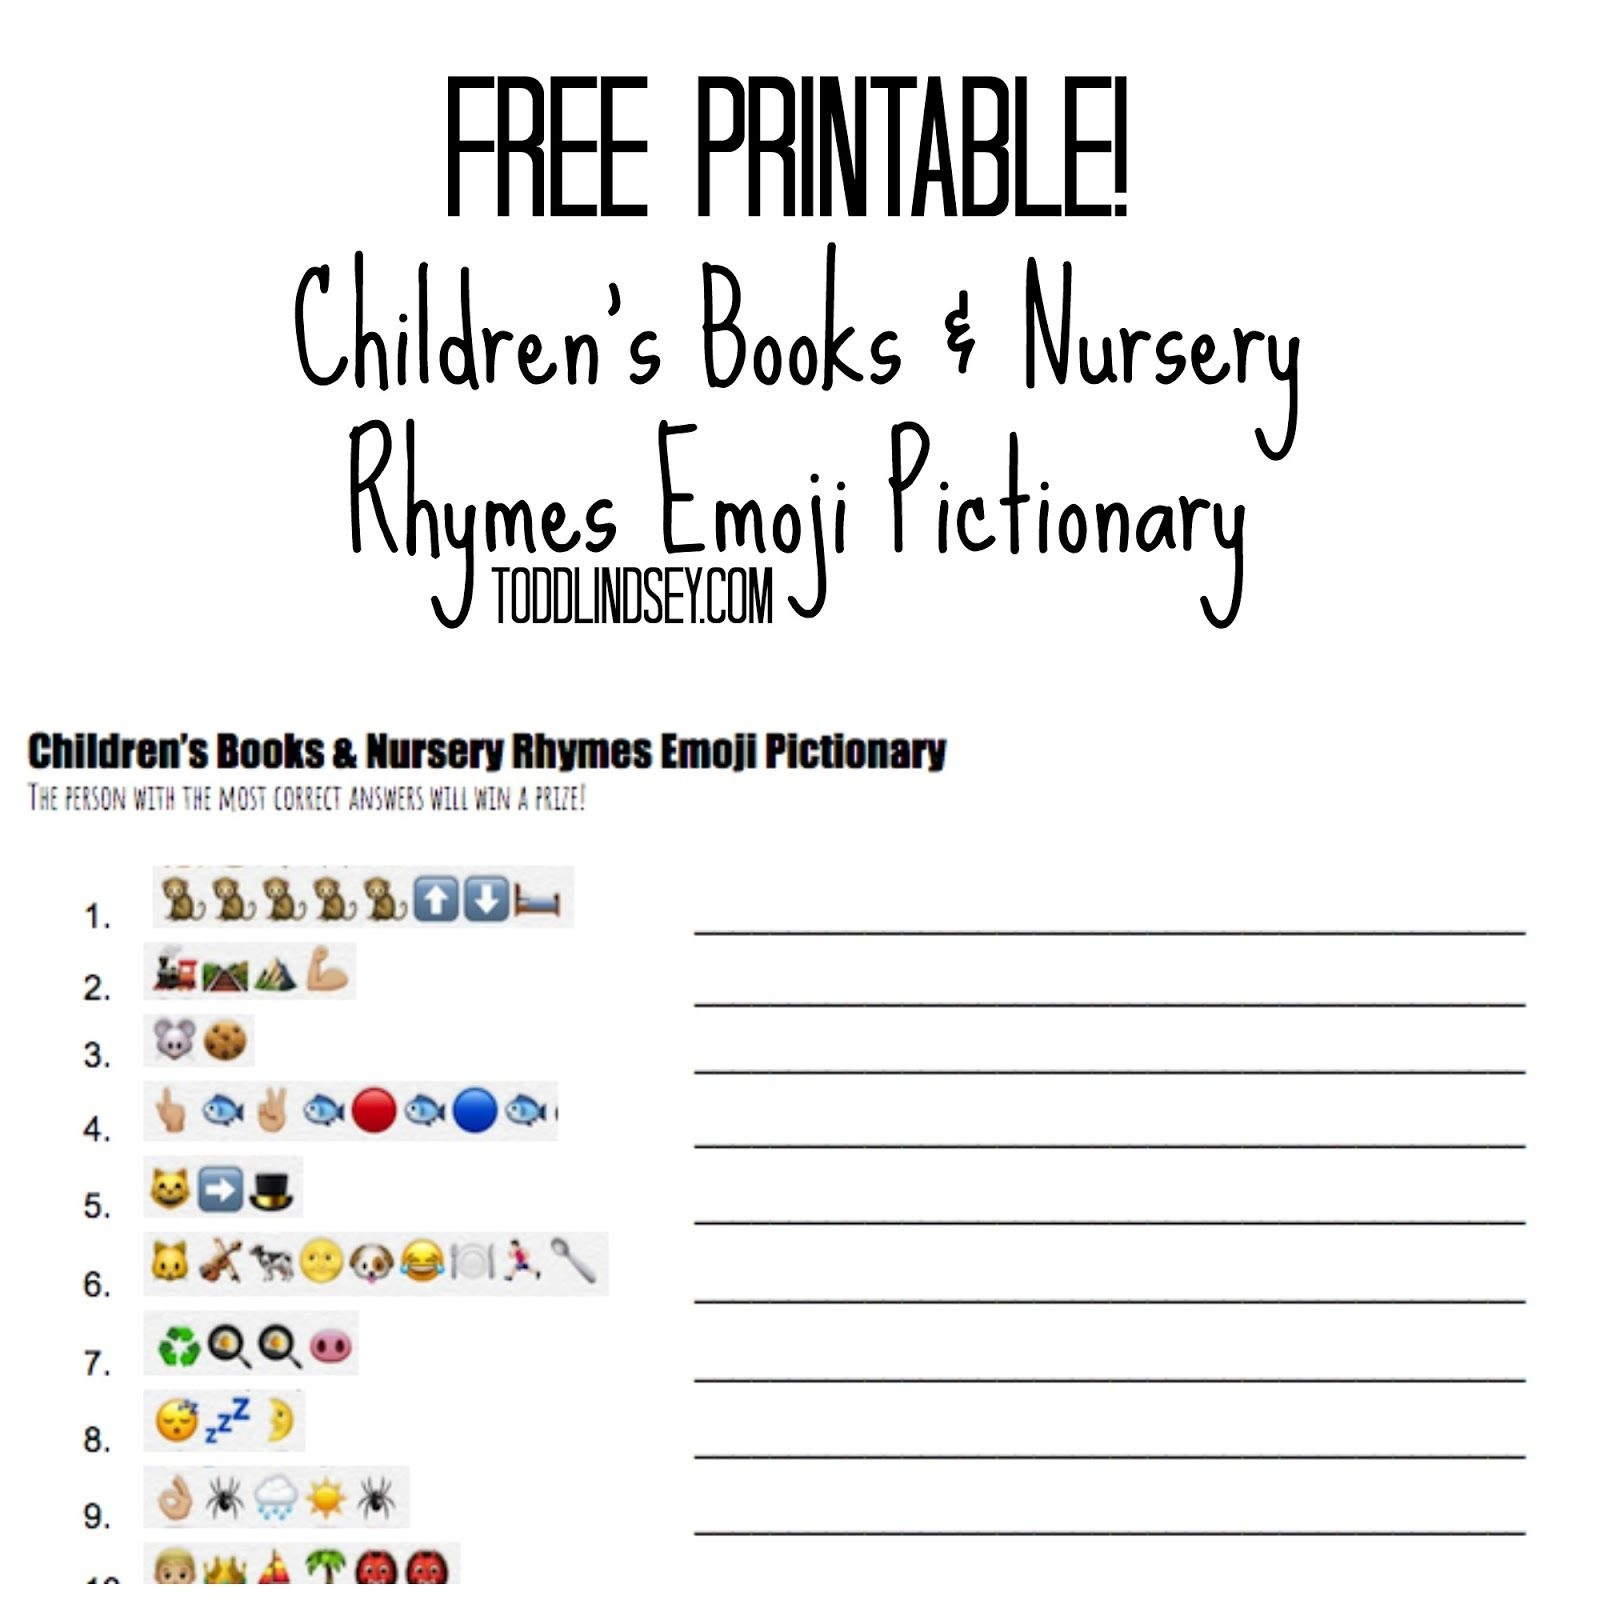 Free Printable! Children's Books & Nursery Rhymes Emoji Pictionary - Emoji Baby Shower Game Free Printable